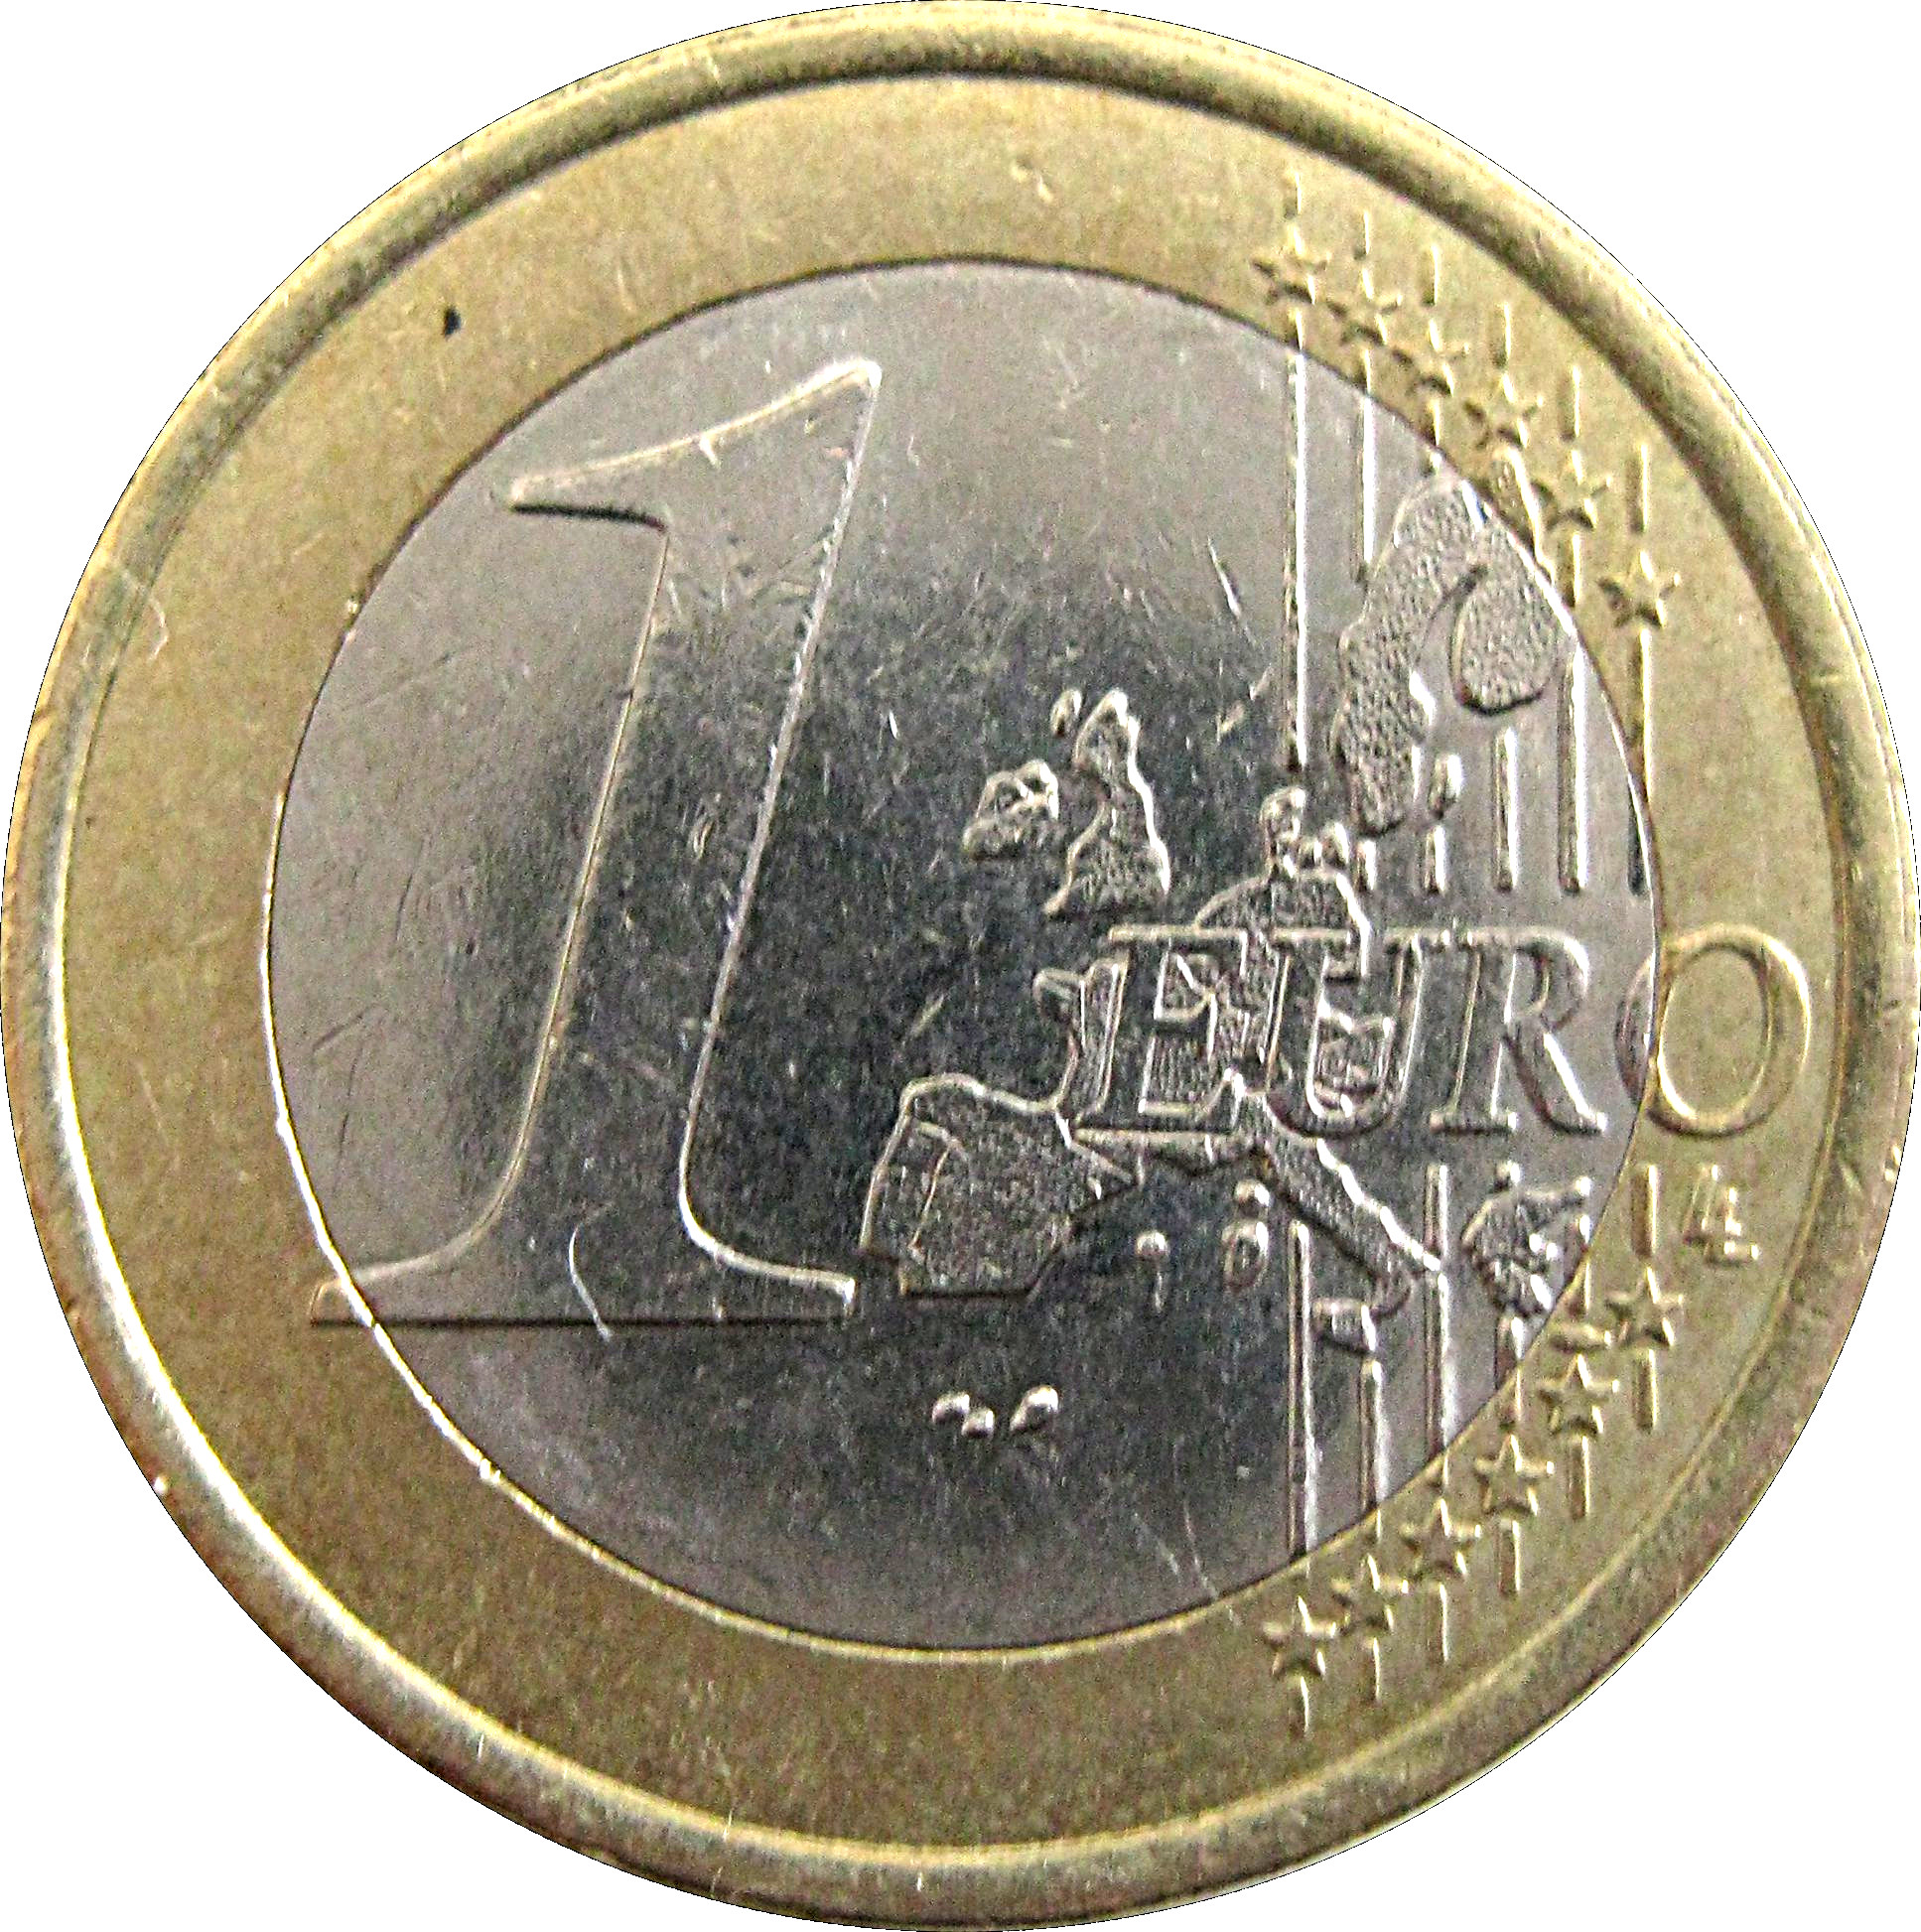 1 cent euro coin worth